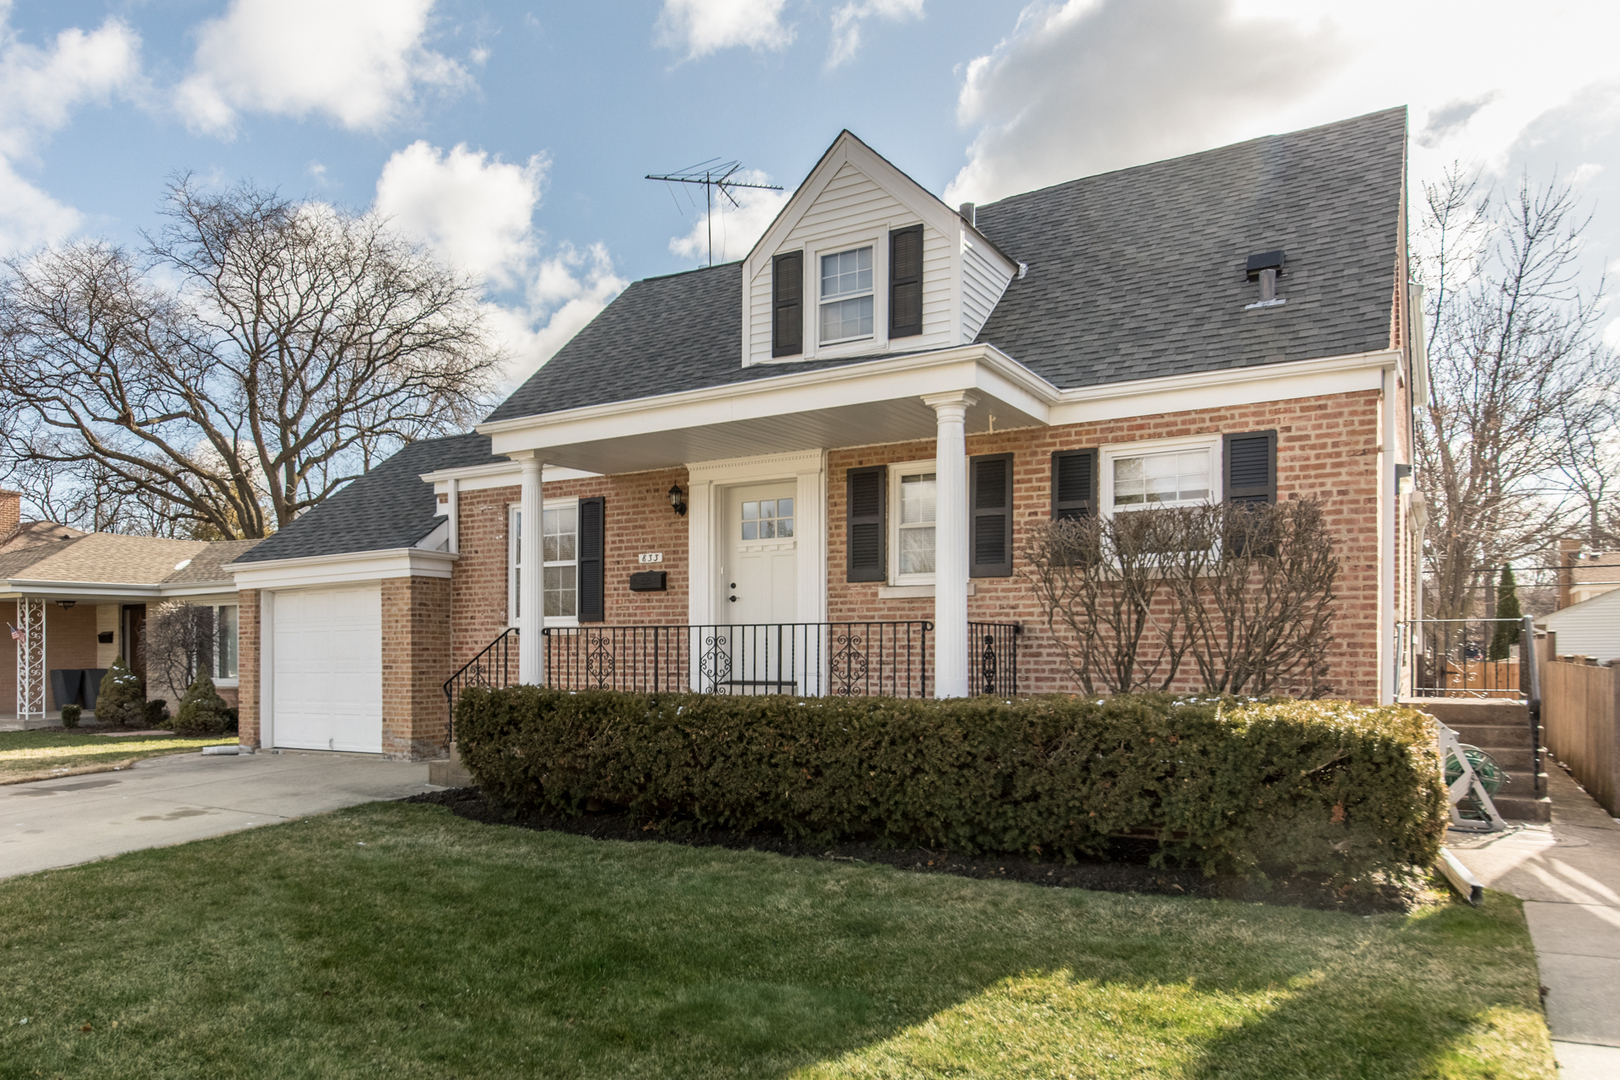 833 Florence Drive, Park Ridge in Cook County, IL 60068 Home for Sale